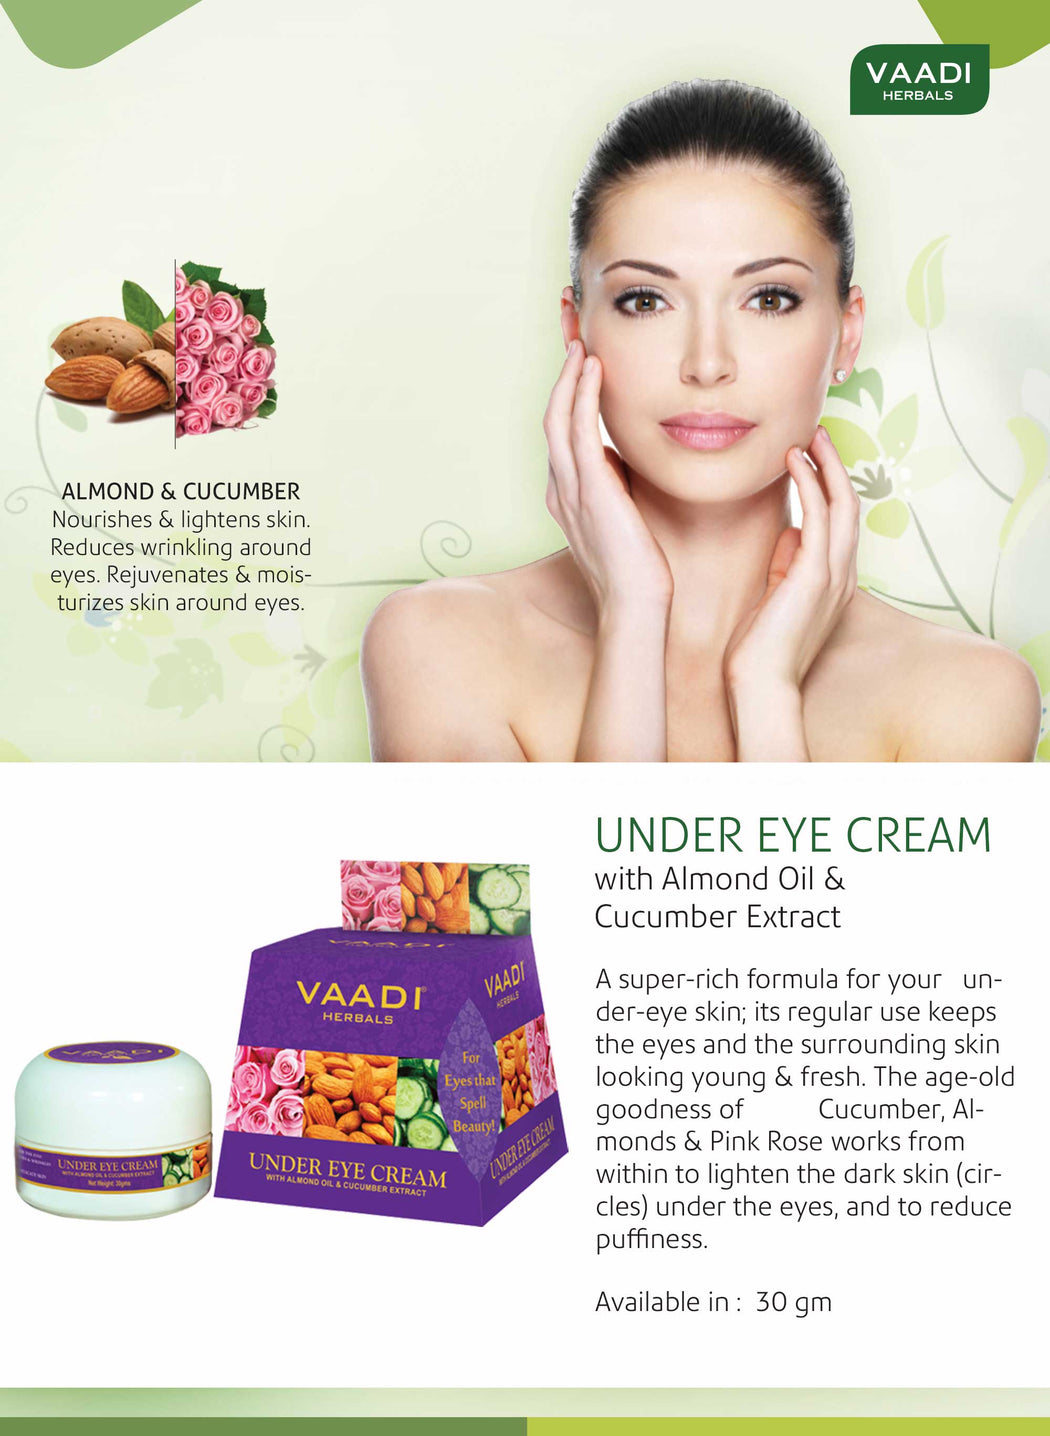 Pack of 3 Under Eye Cream - Almond Oil & Cucumber extract (30 gms x 3)